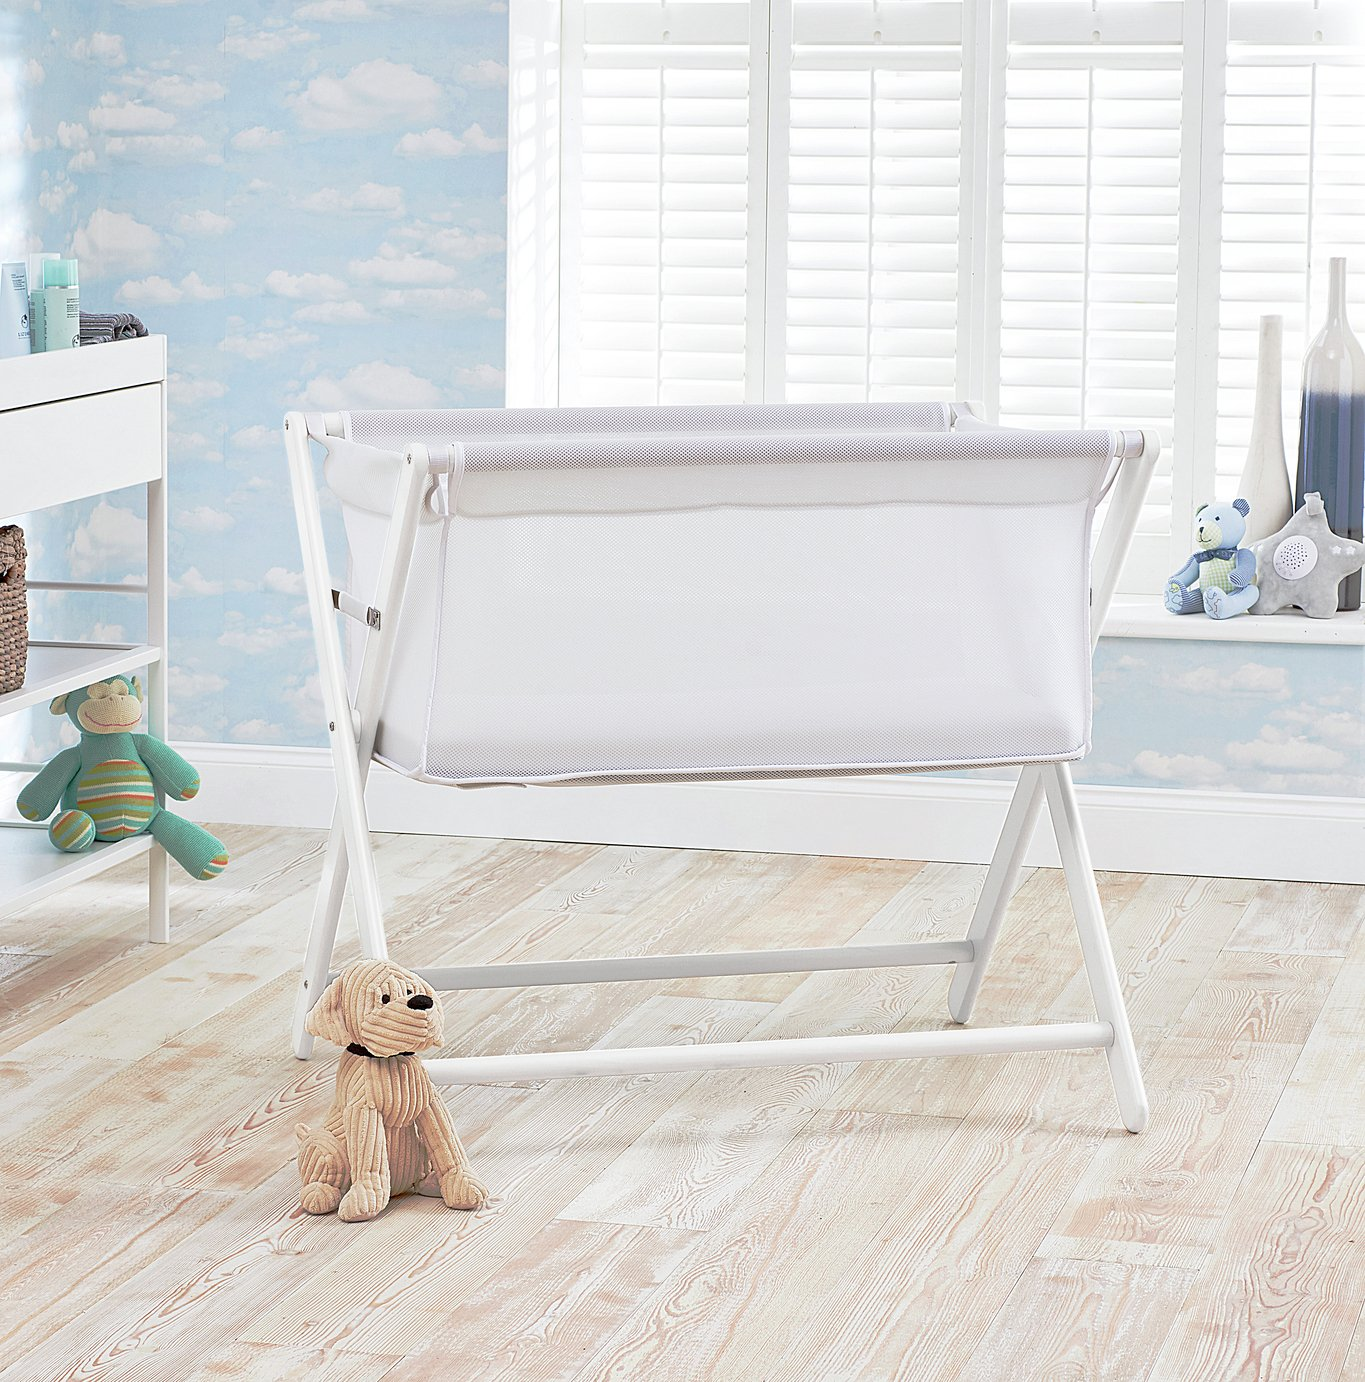 Little Chick London Bedside Crib - Classic White